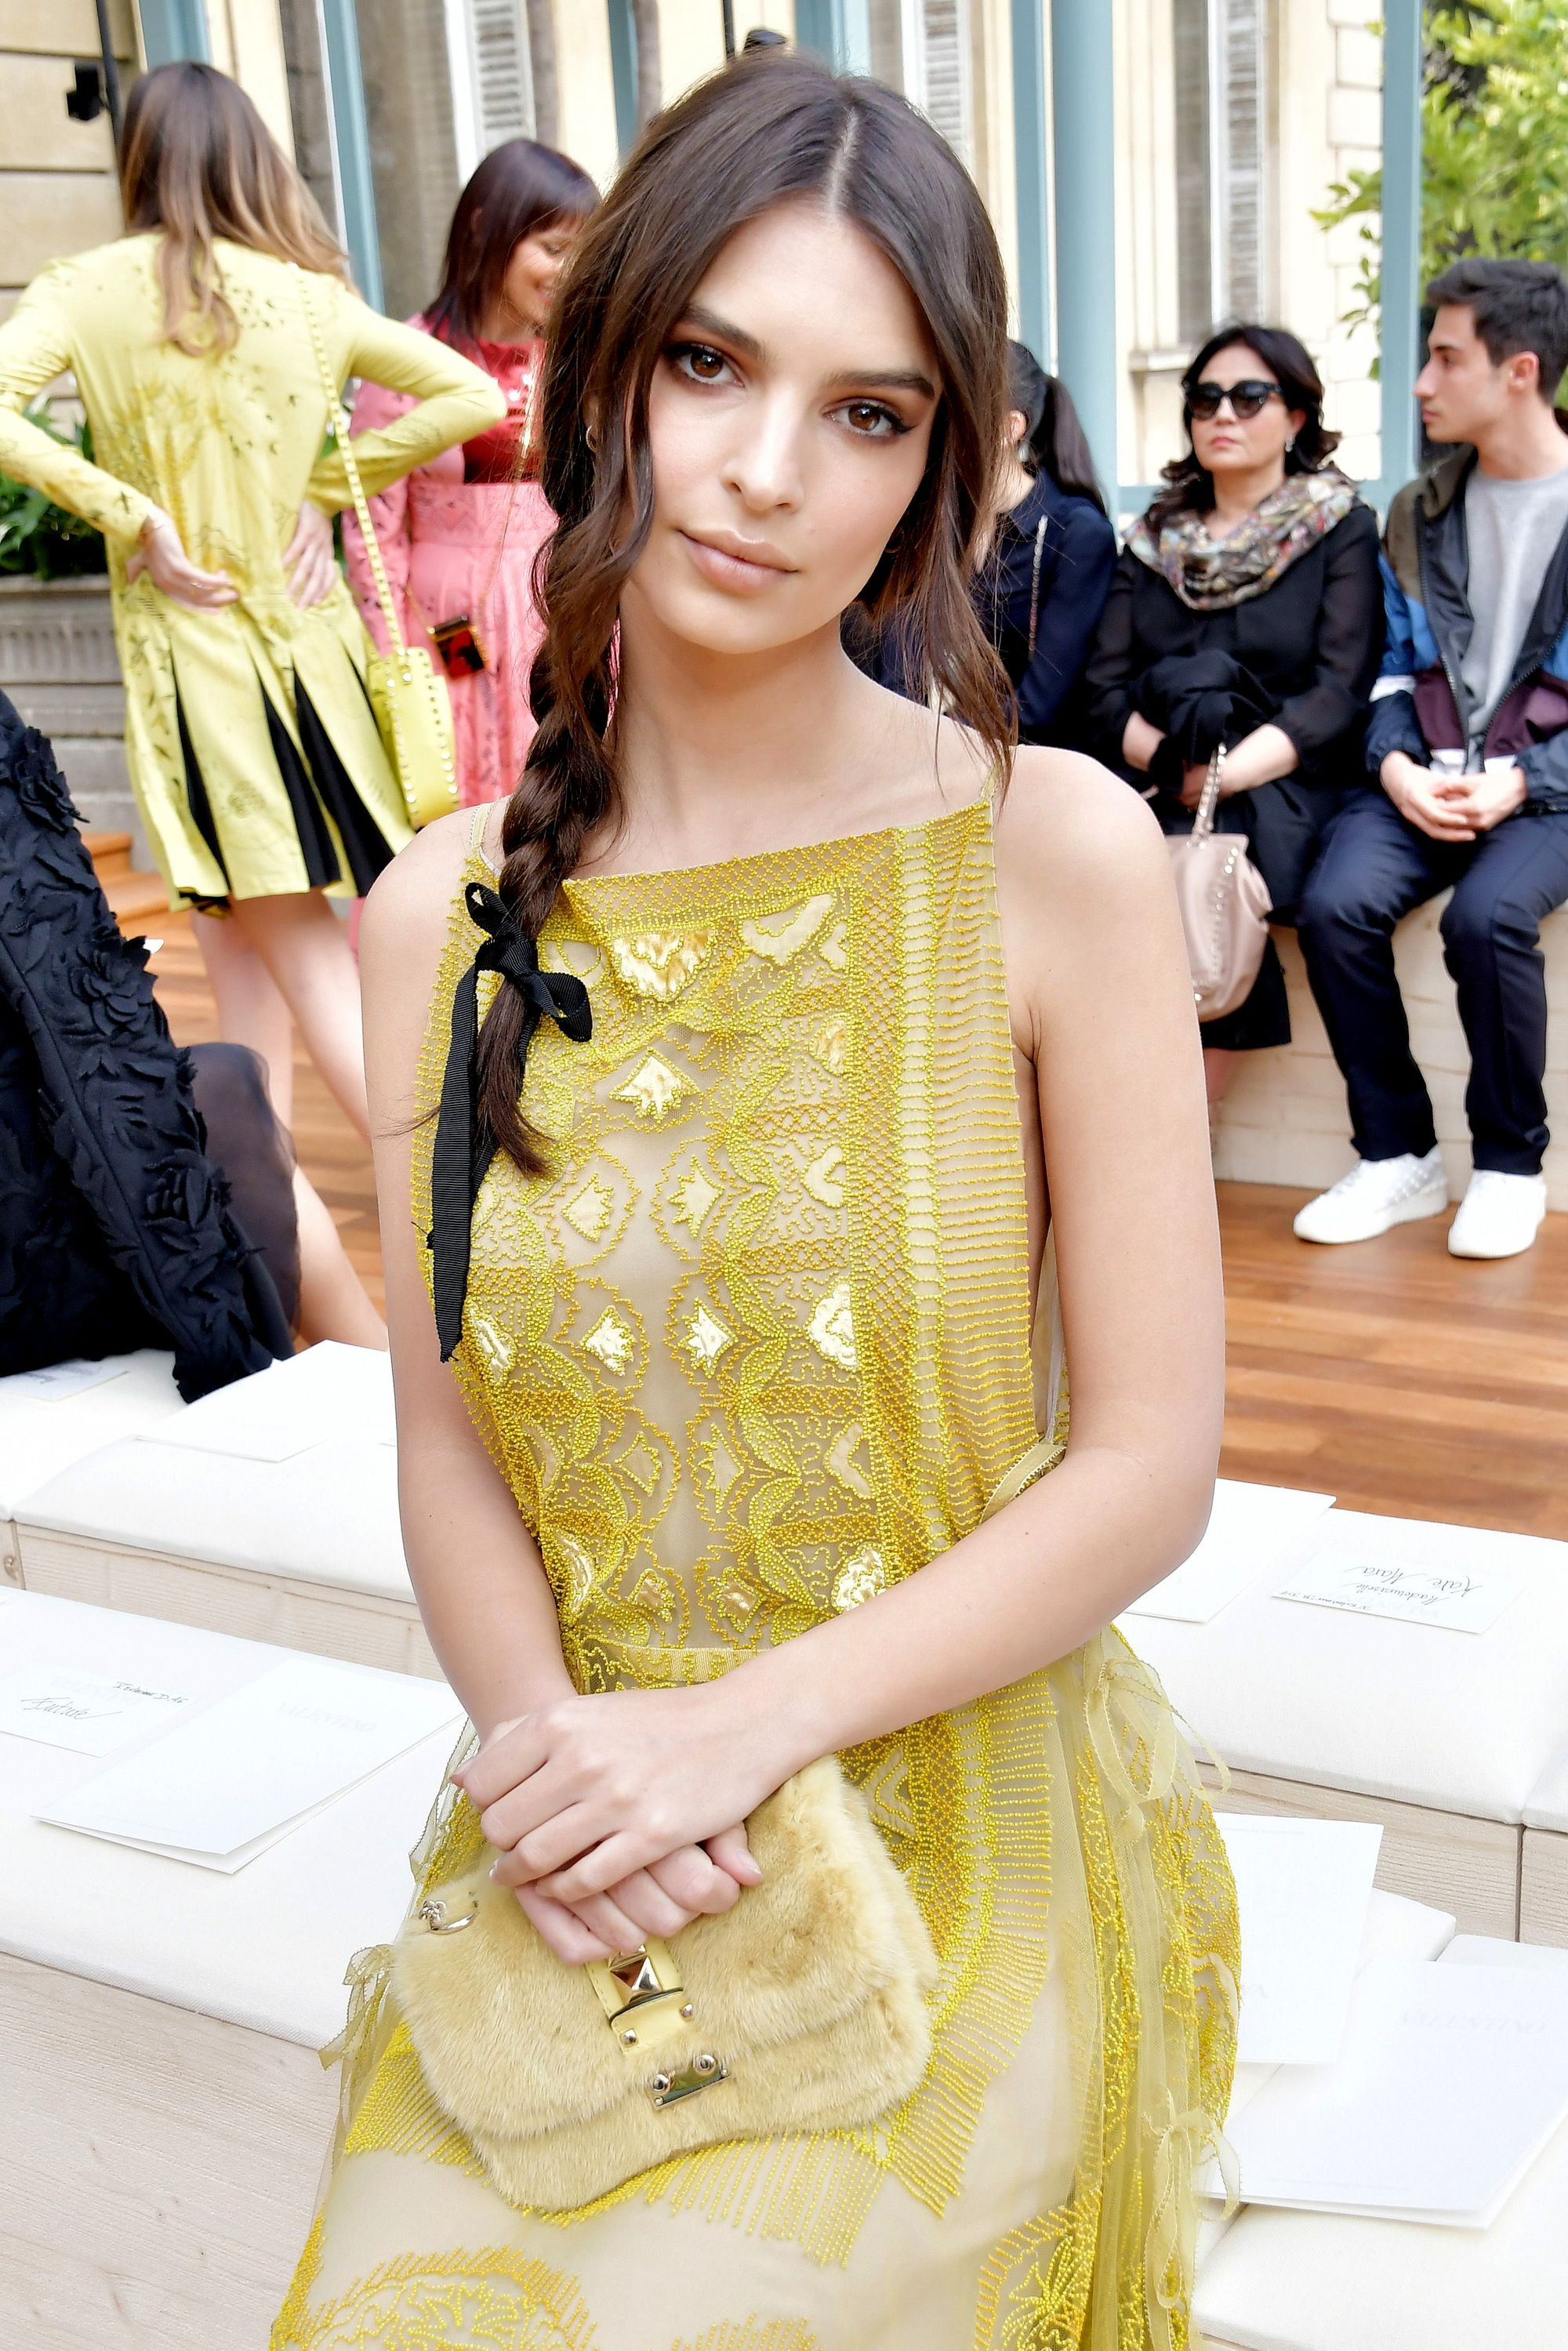 emily ratajkowski wearing a citrus coloured lace dress with her long brunette hair in a side braid with black bow